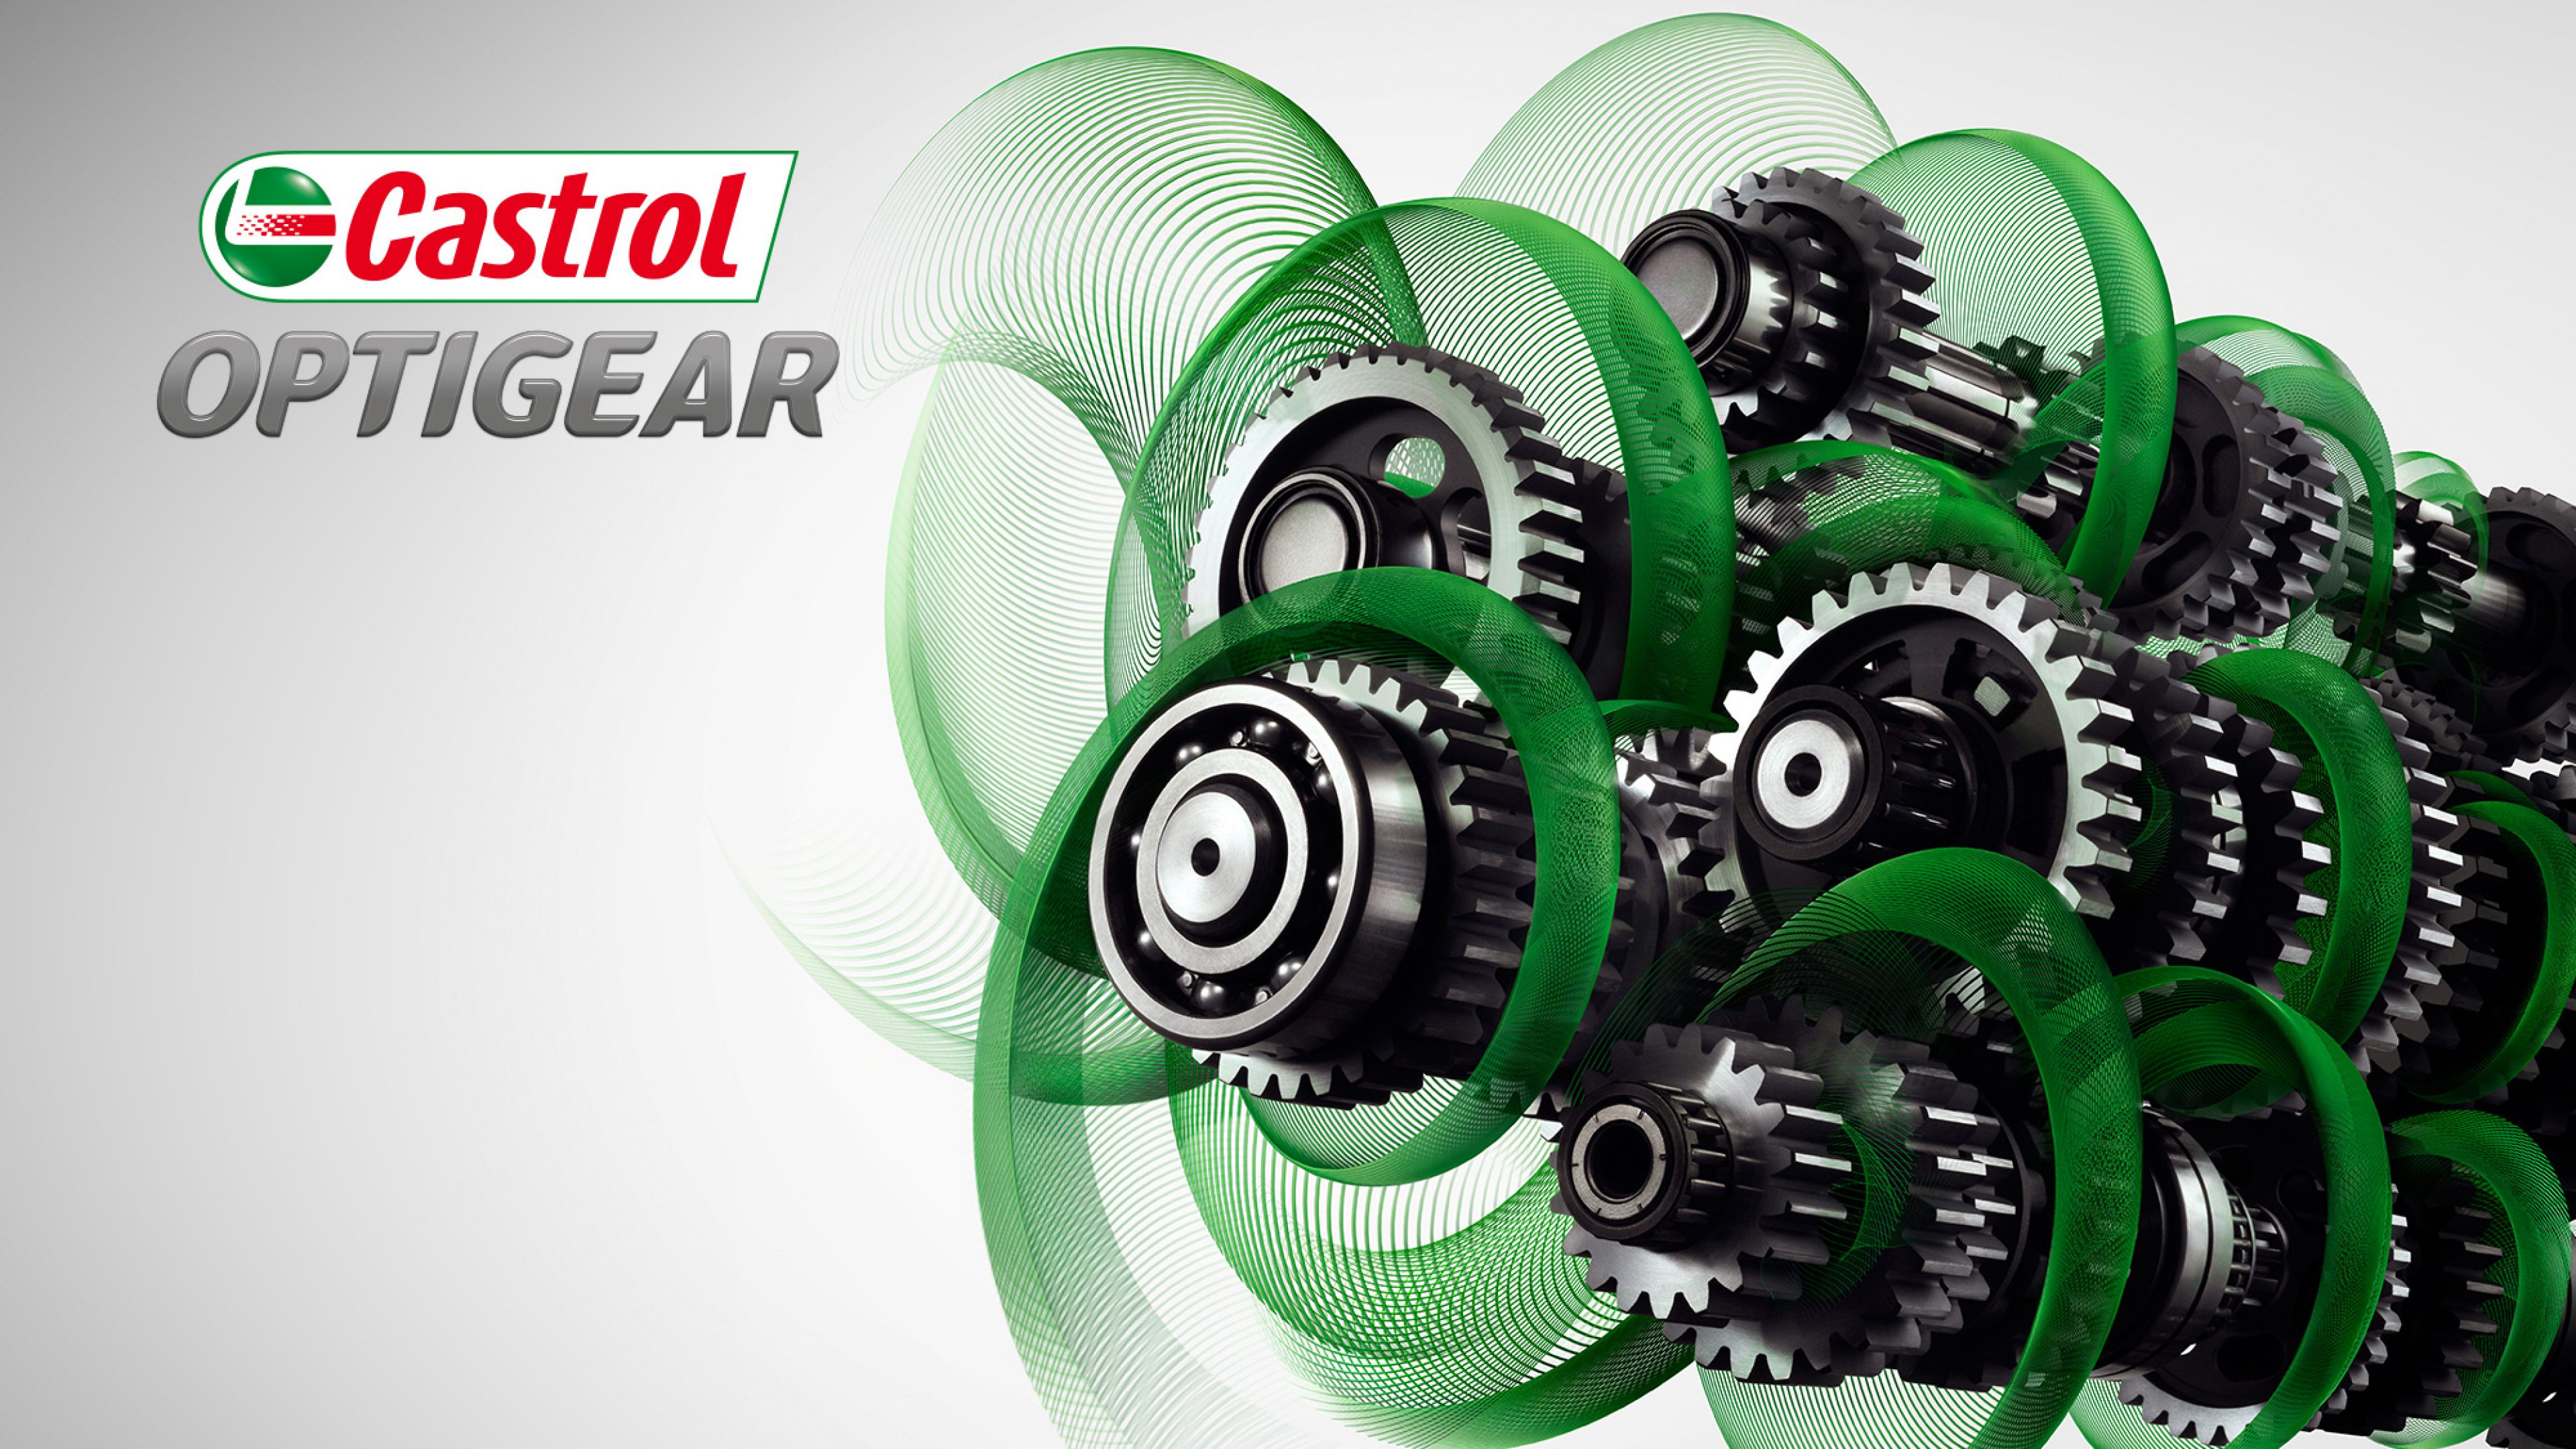 Castrol OPTIGEAR